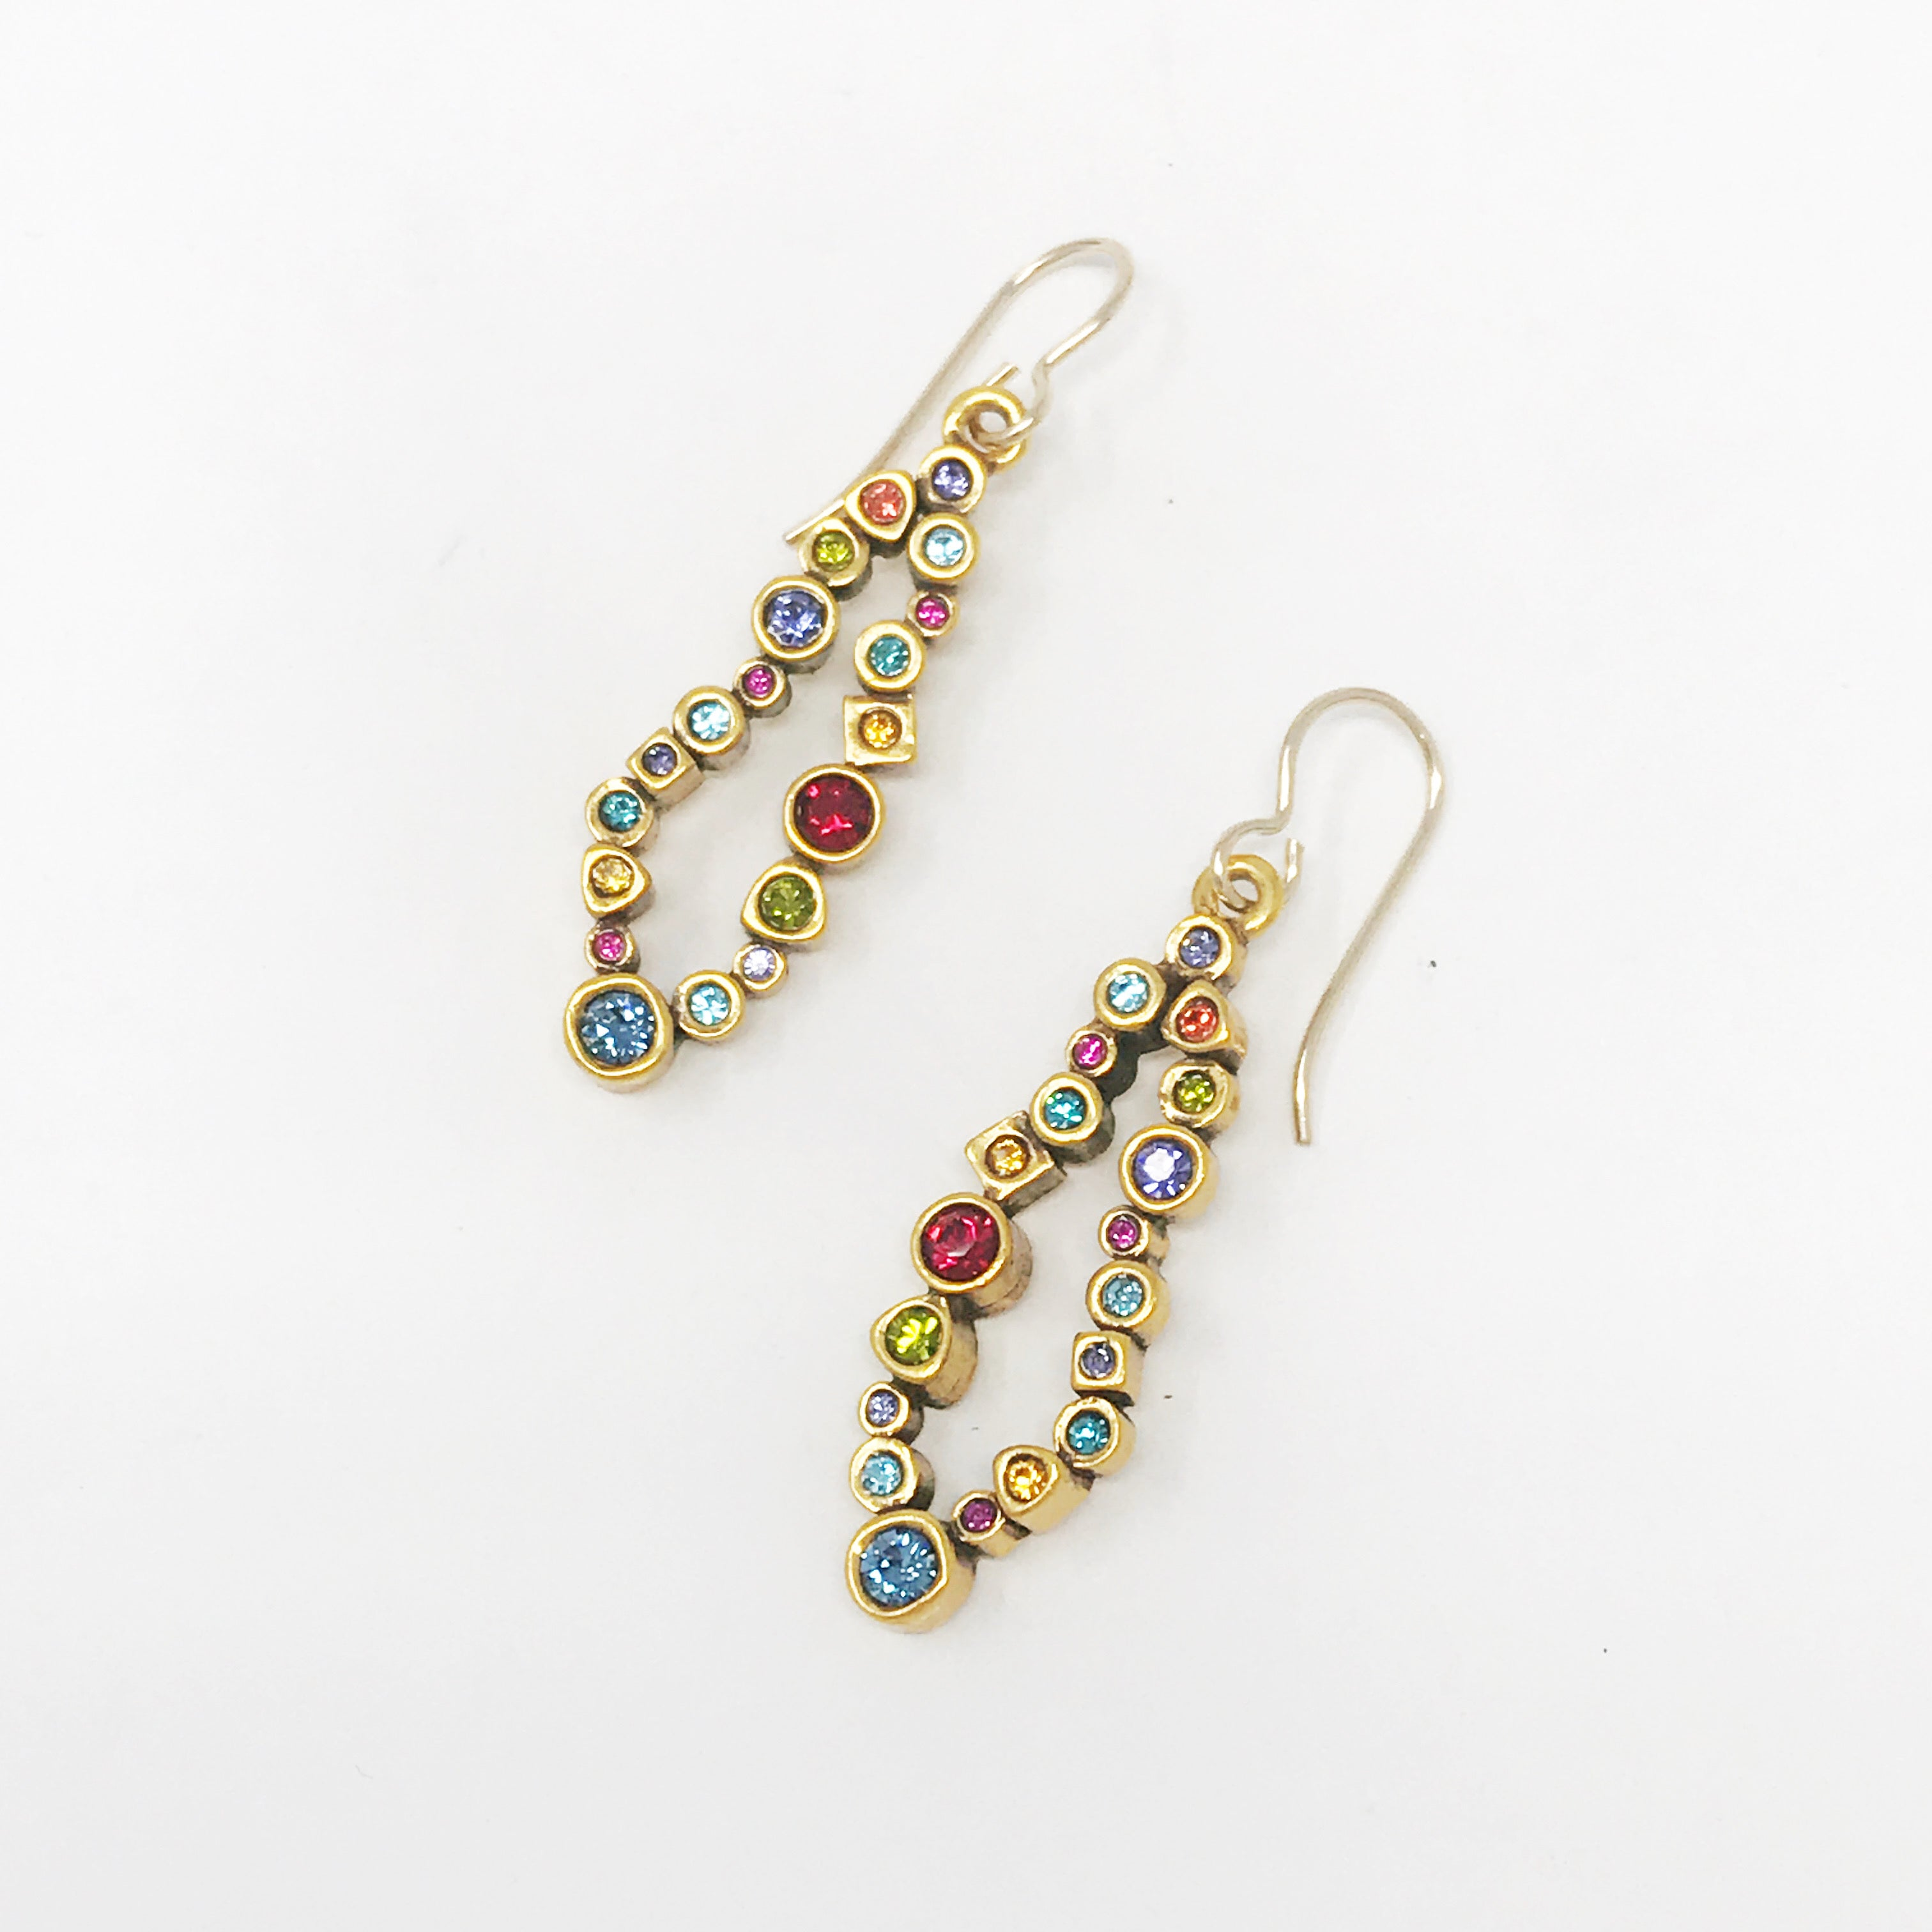 Beeline Earrings in Gold Prosecco